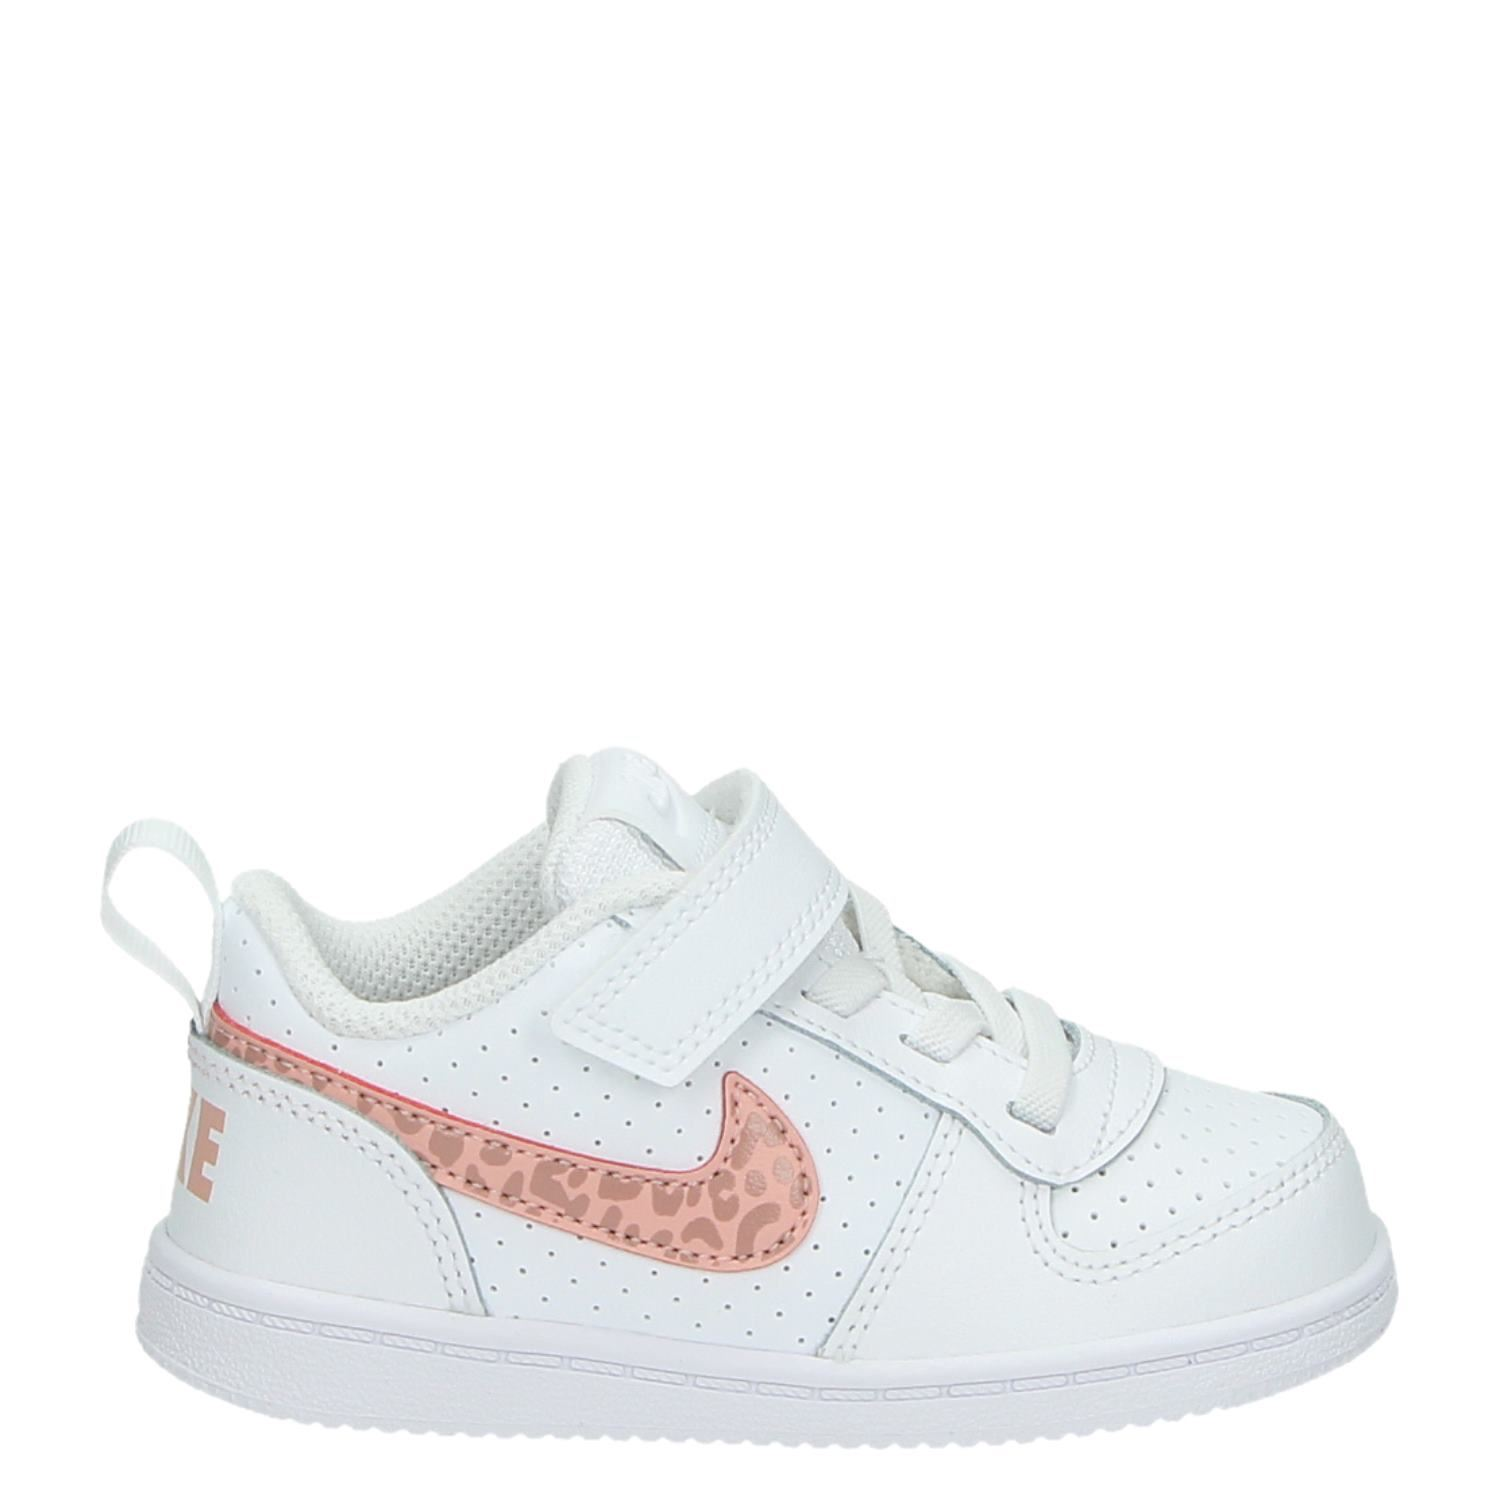 Nike Court Borough meisjes lage sneakers wit